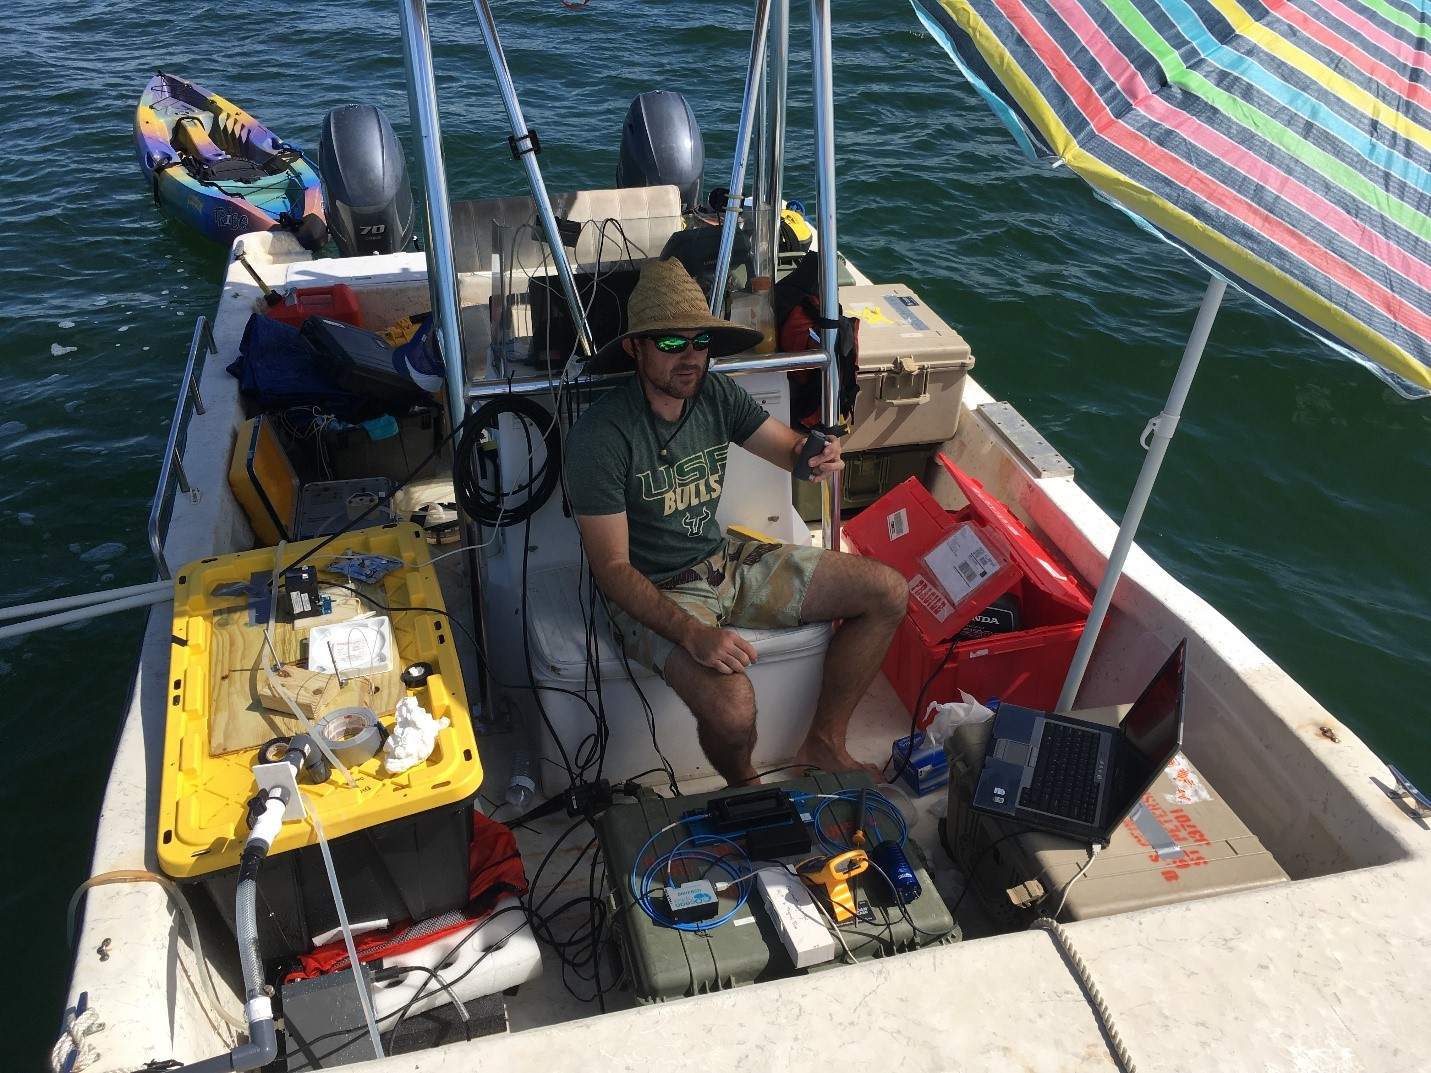 It can get cramped on a small vessel with all the instruments needed to characterize the carbonate system.  The last minute additions of a kayak –and beach umbrella! – were much appreciated.